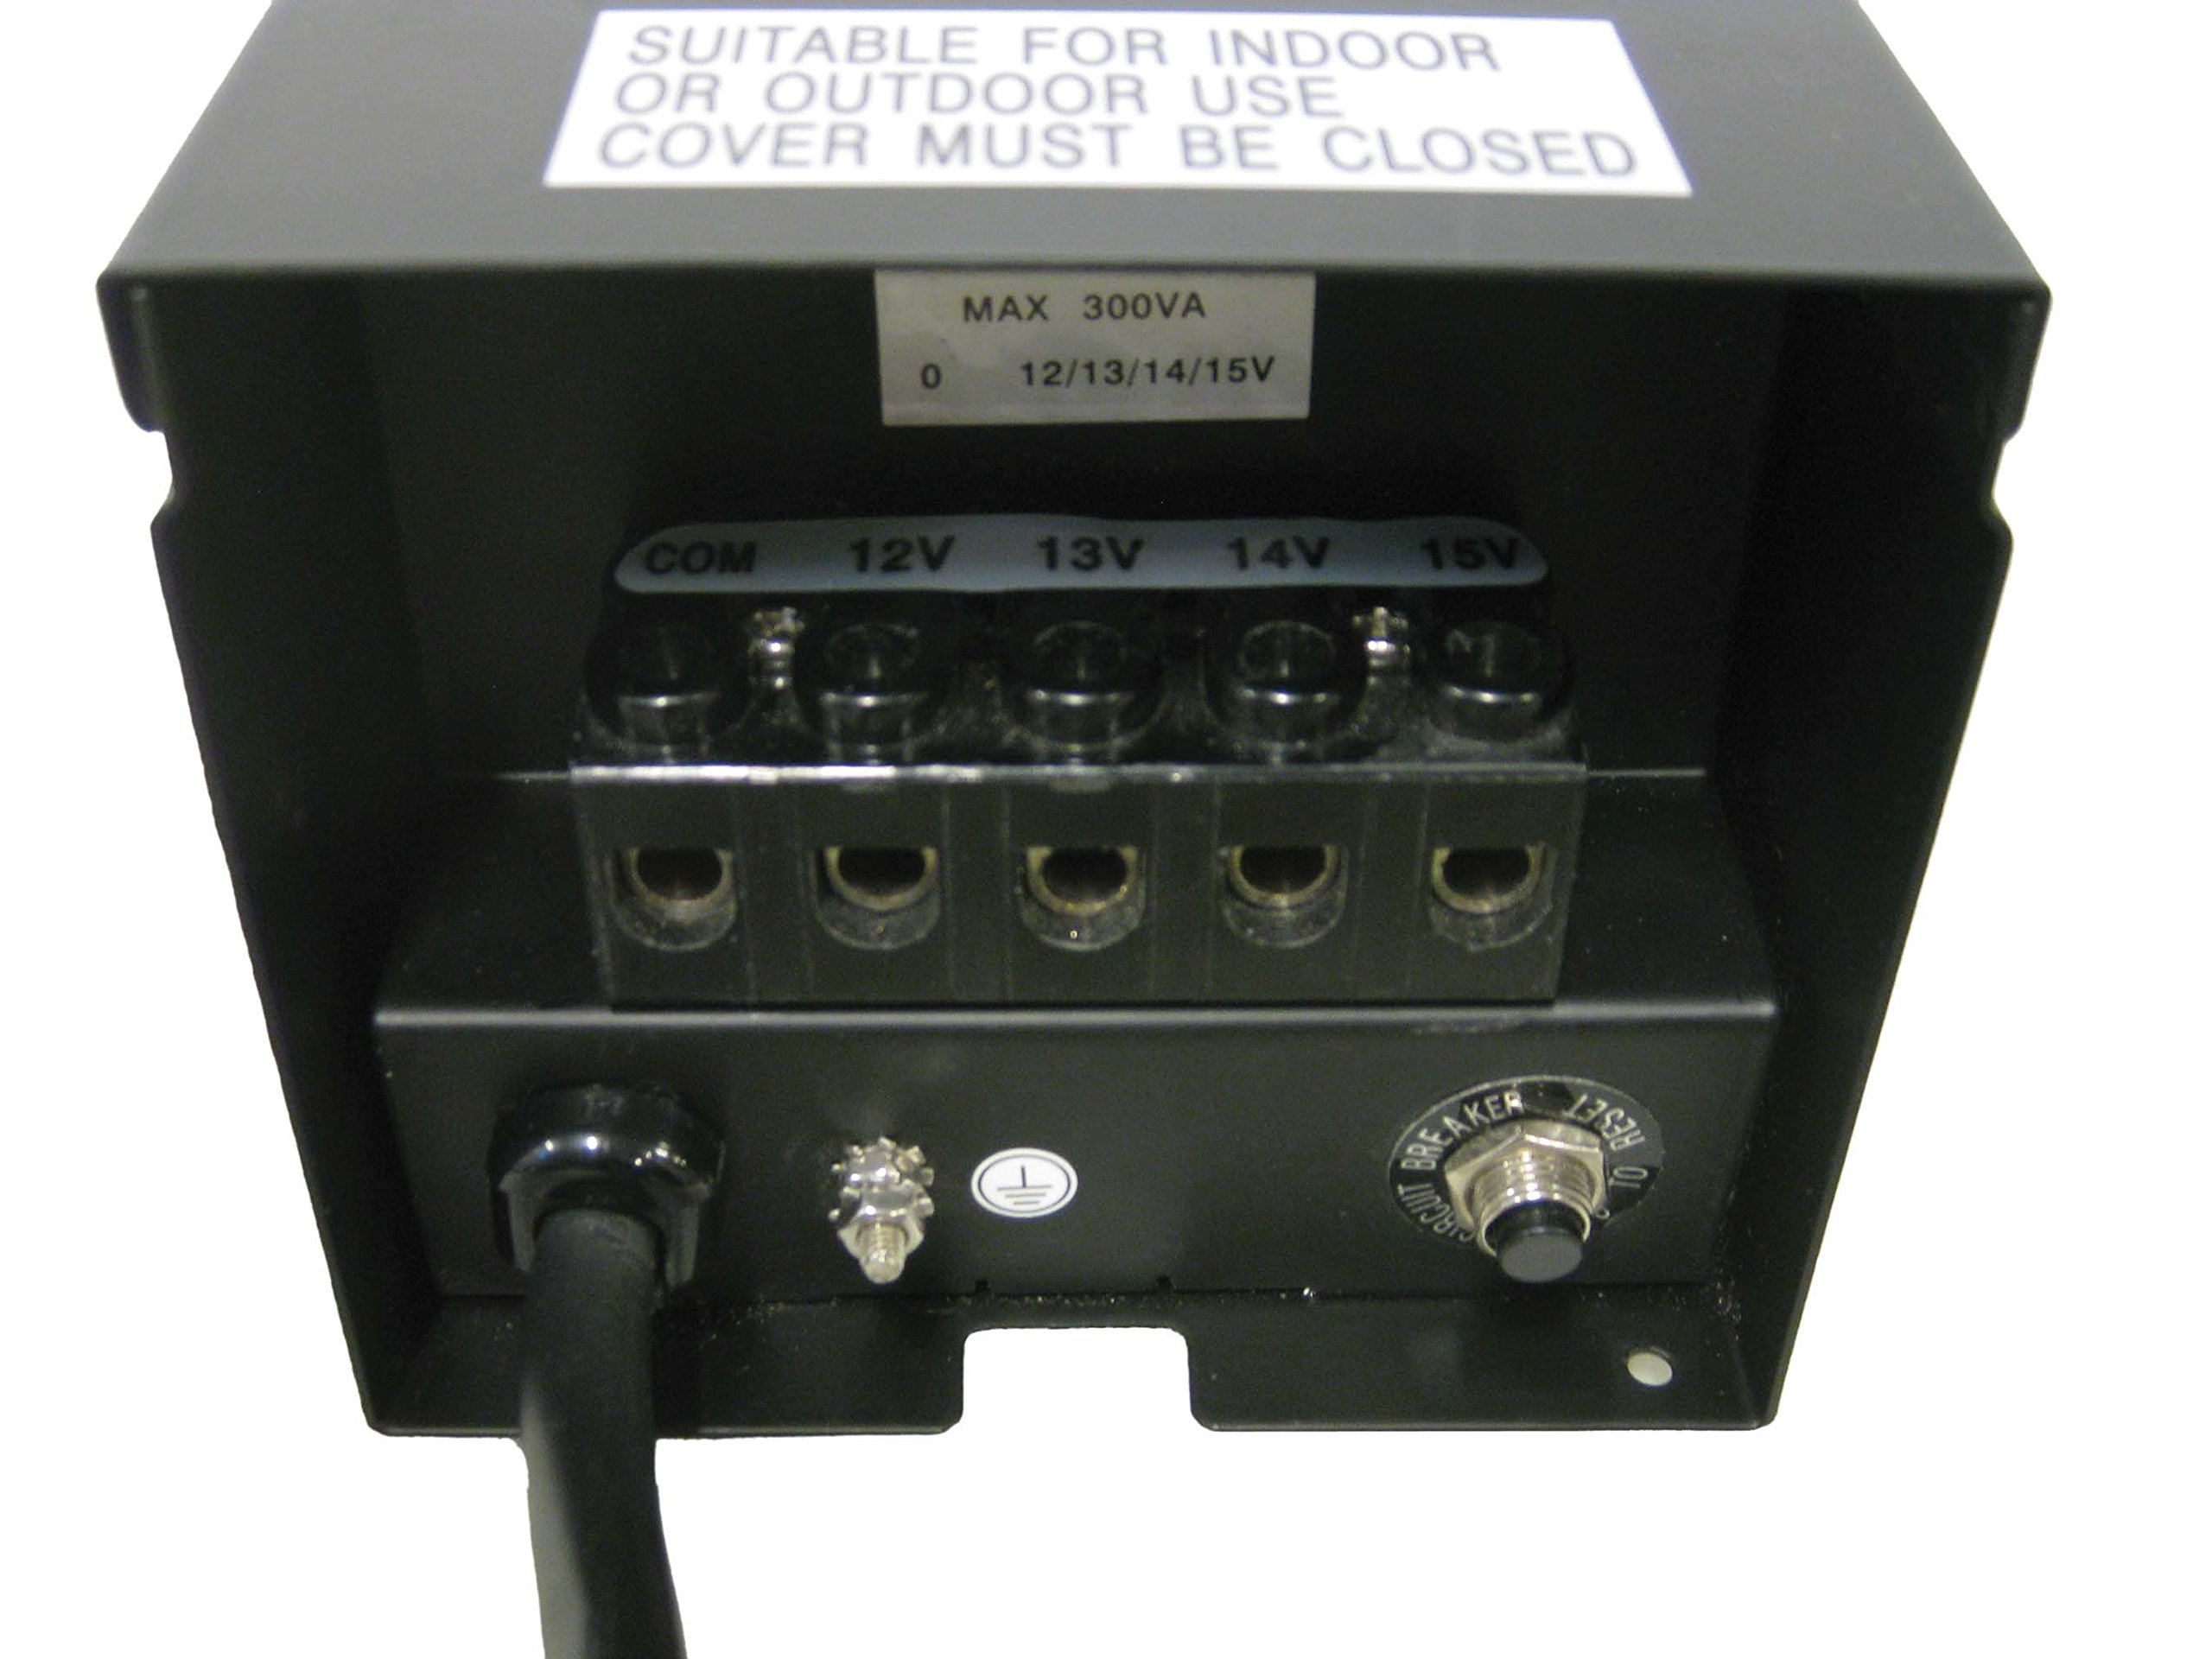 EasyPro Pond Products 300W Transformer with Photo-Eye and Timer